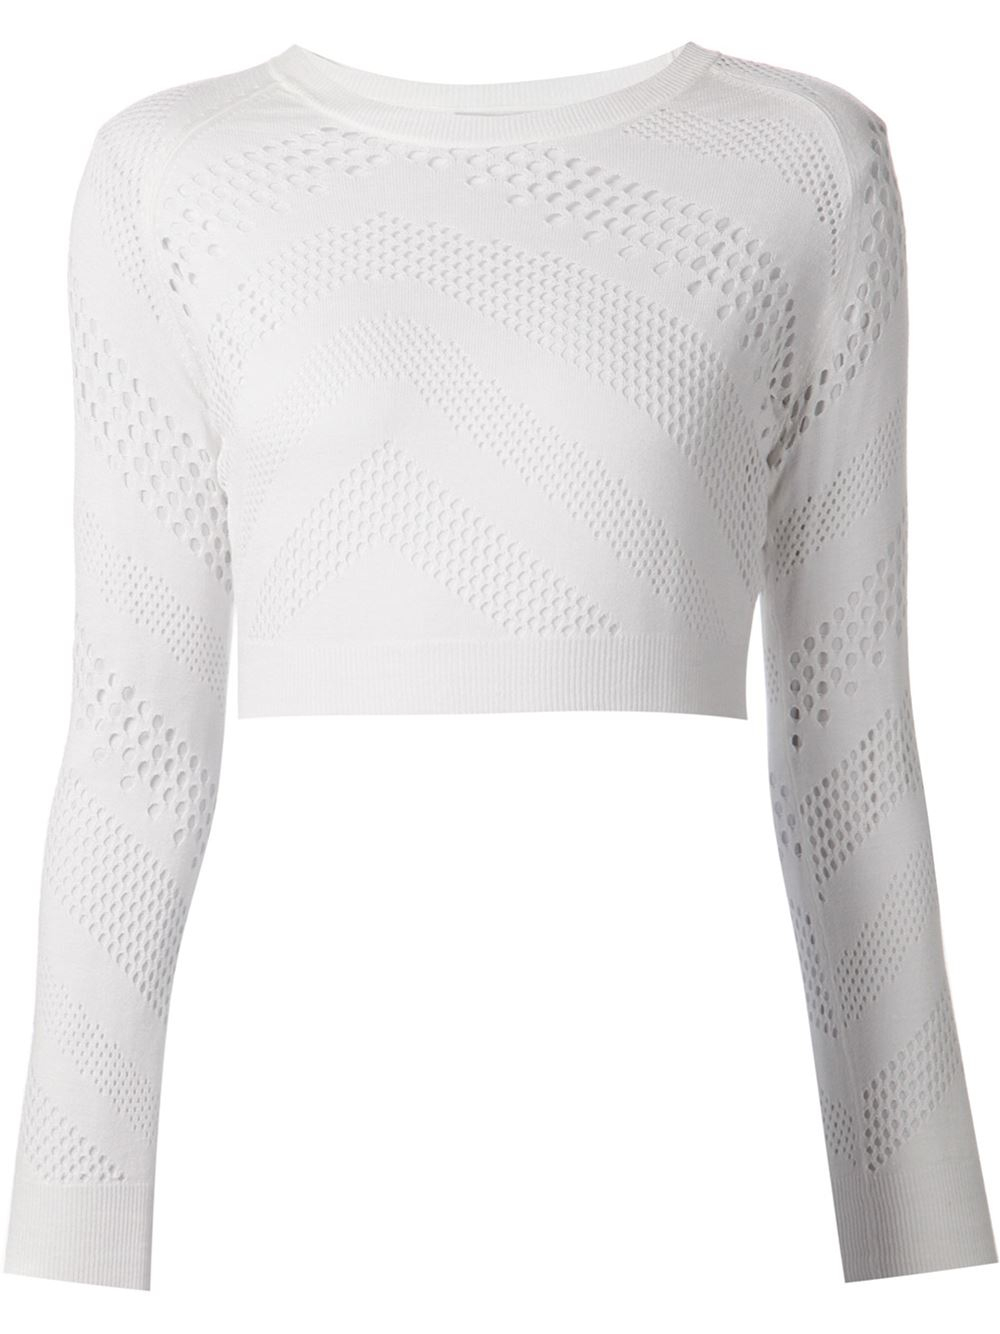 Iro Cropped Open Knit Sweater in White | Lyst